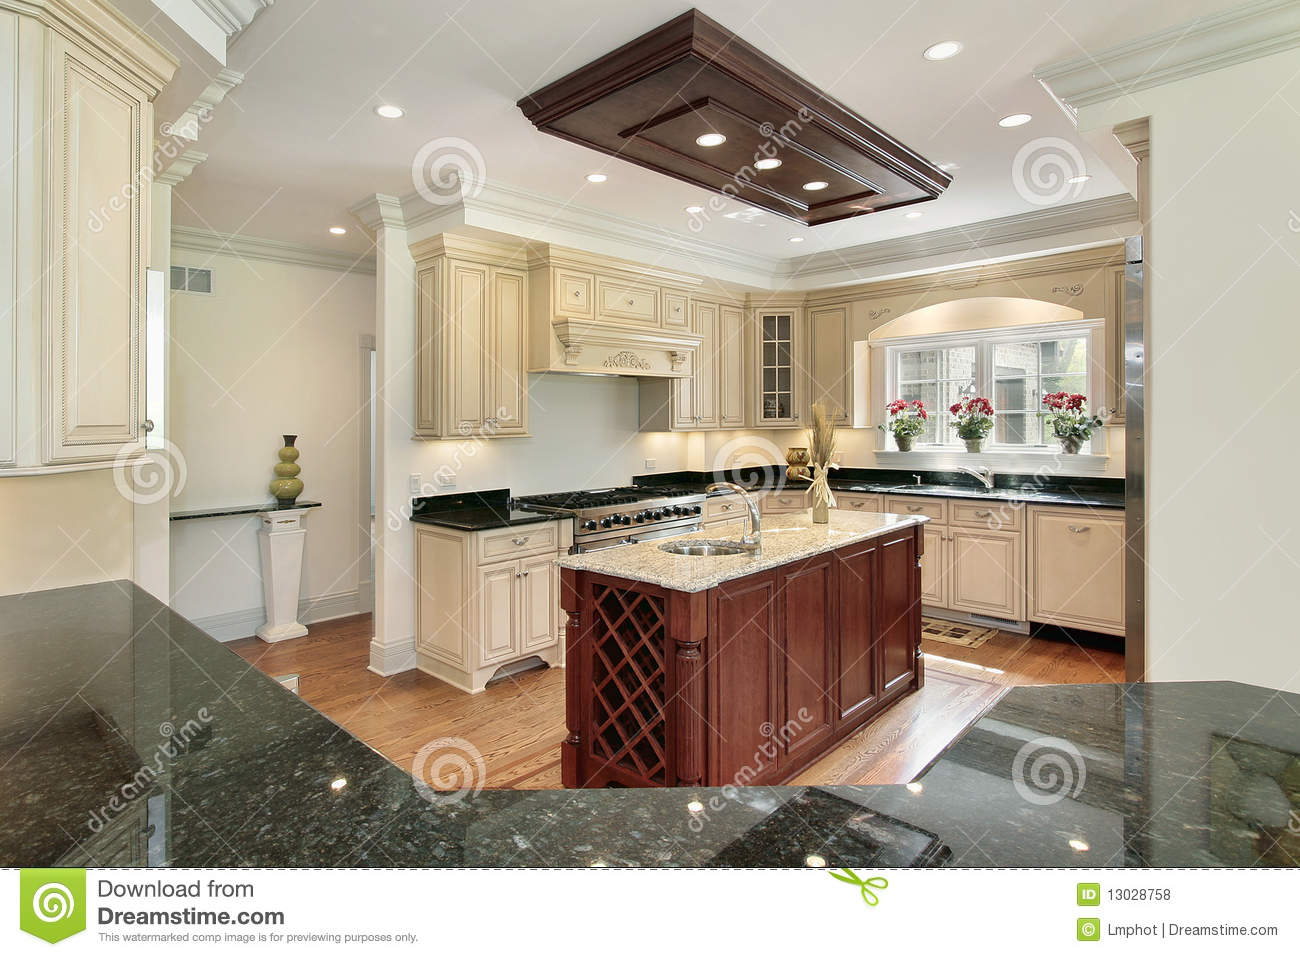 centre island kitchen kitchen with center island stock photo image of home 2054